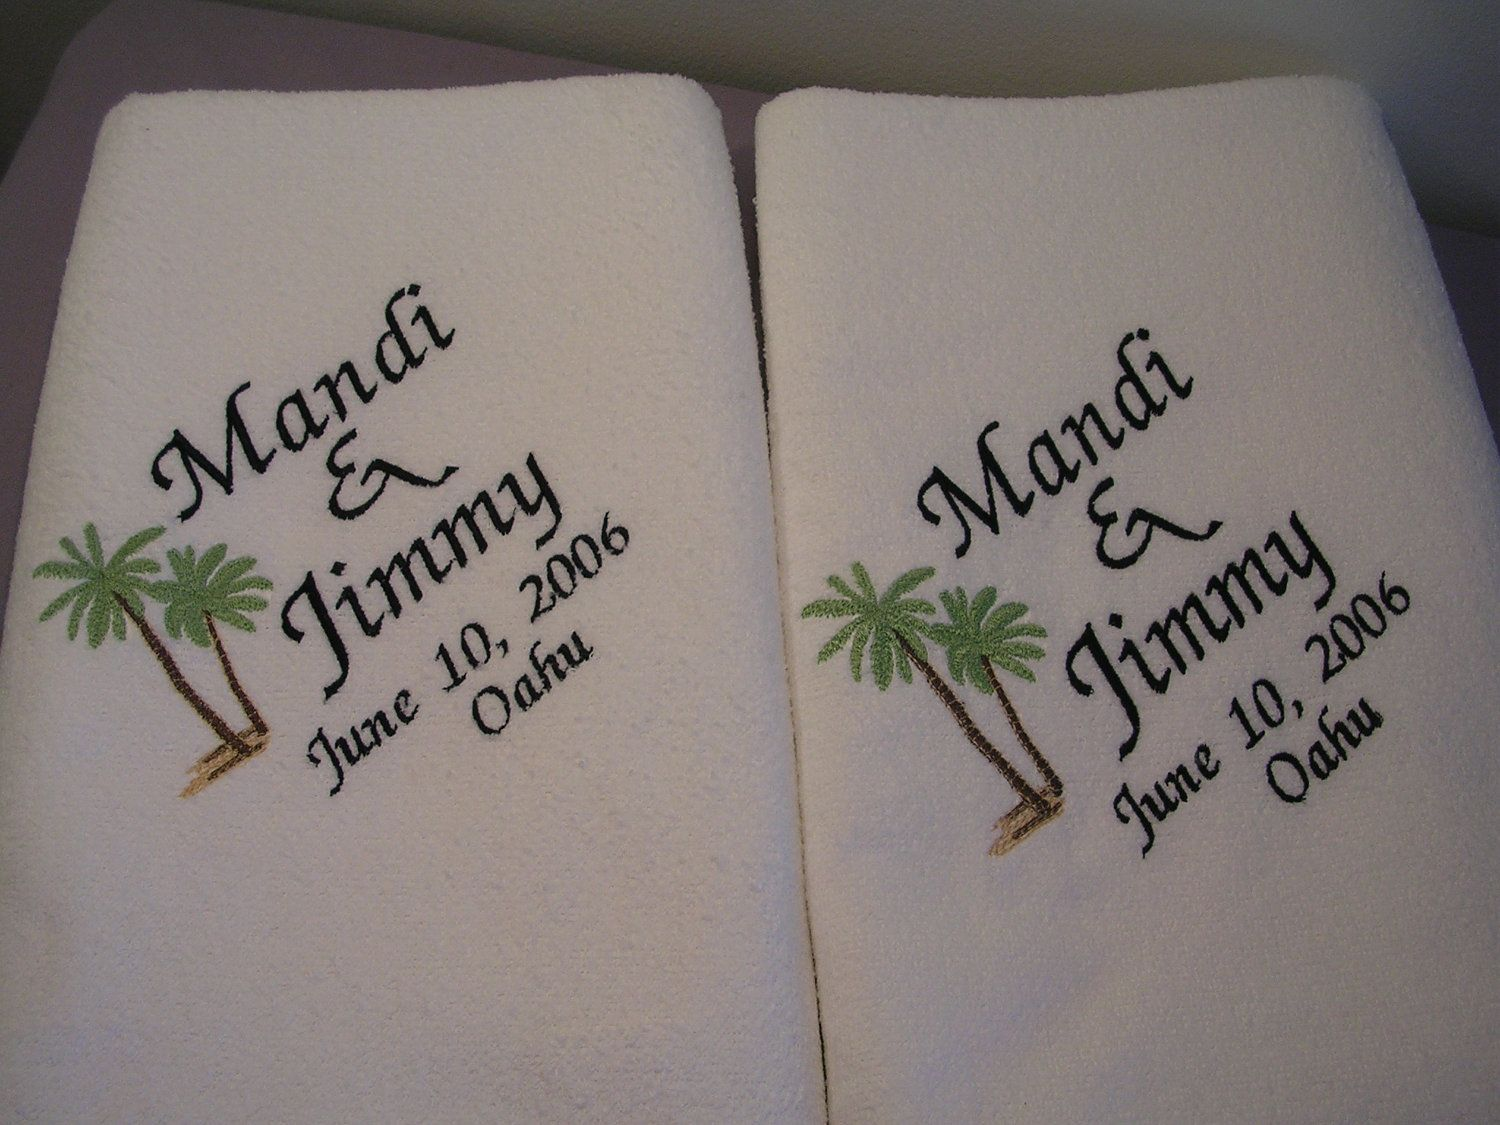 Personalized Wedding Beach Bath Towels 2 For Bride And Groom Gift Honeymoon Bridal Shower 49 99 Via Etsy